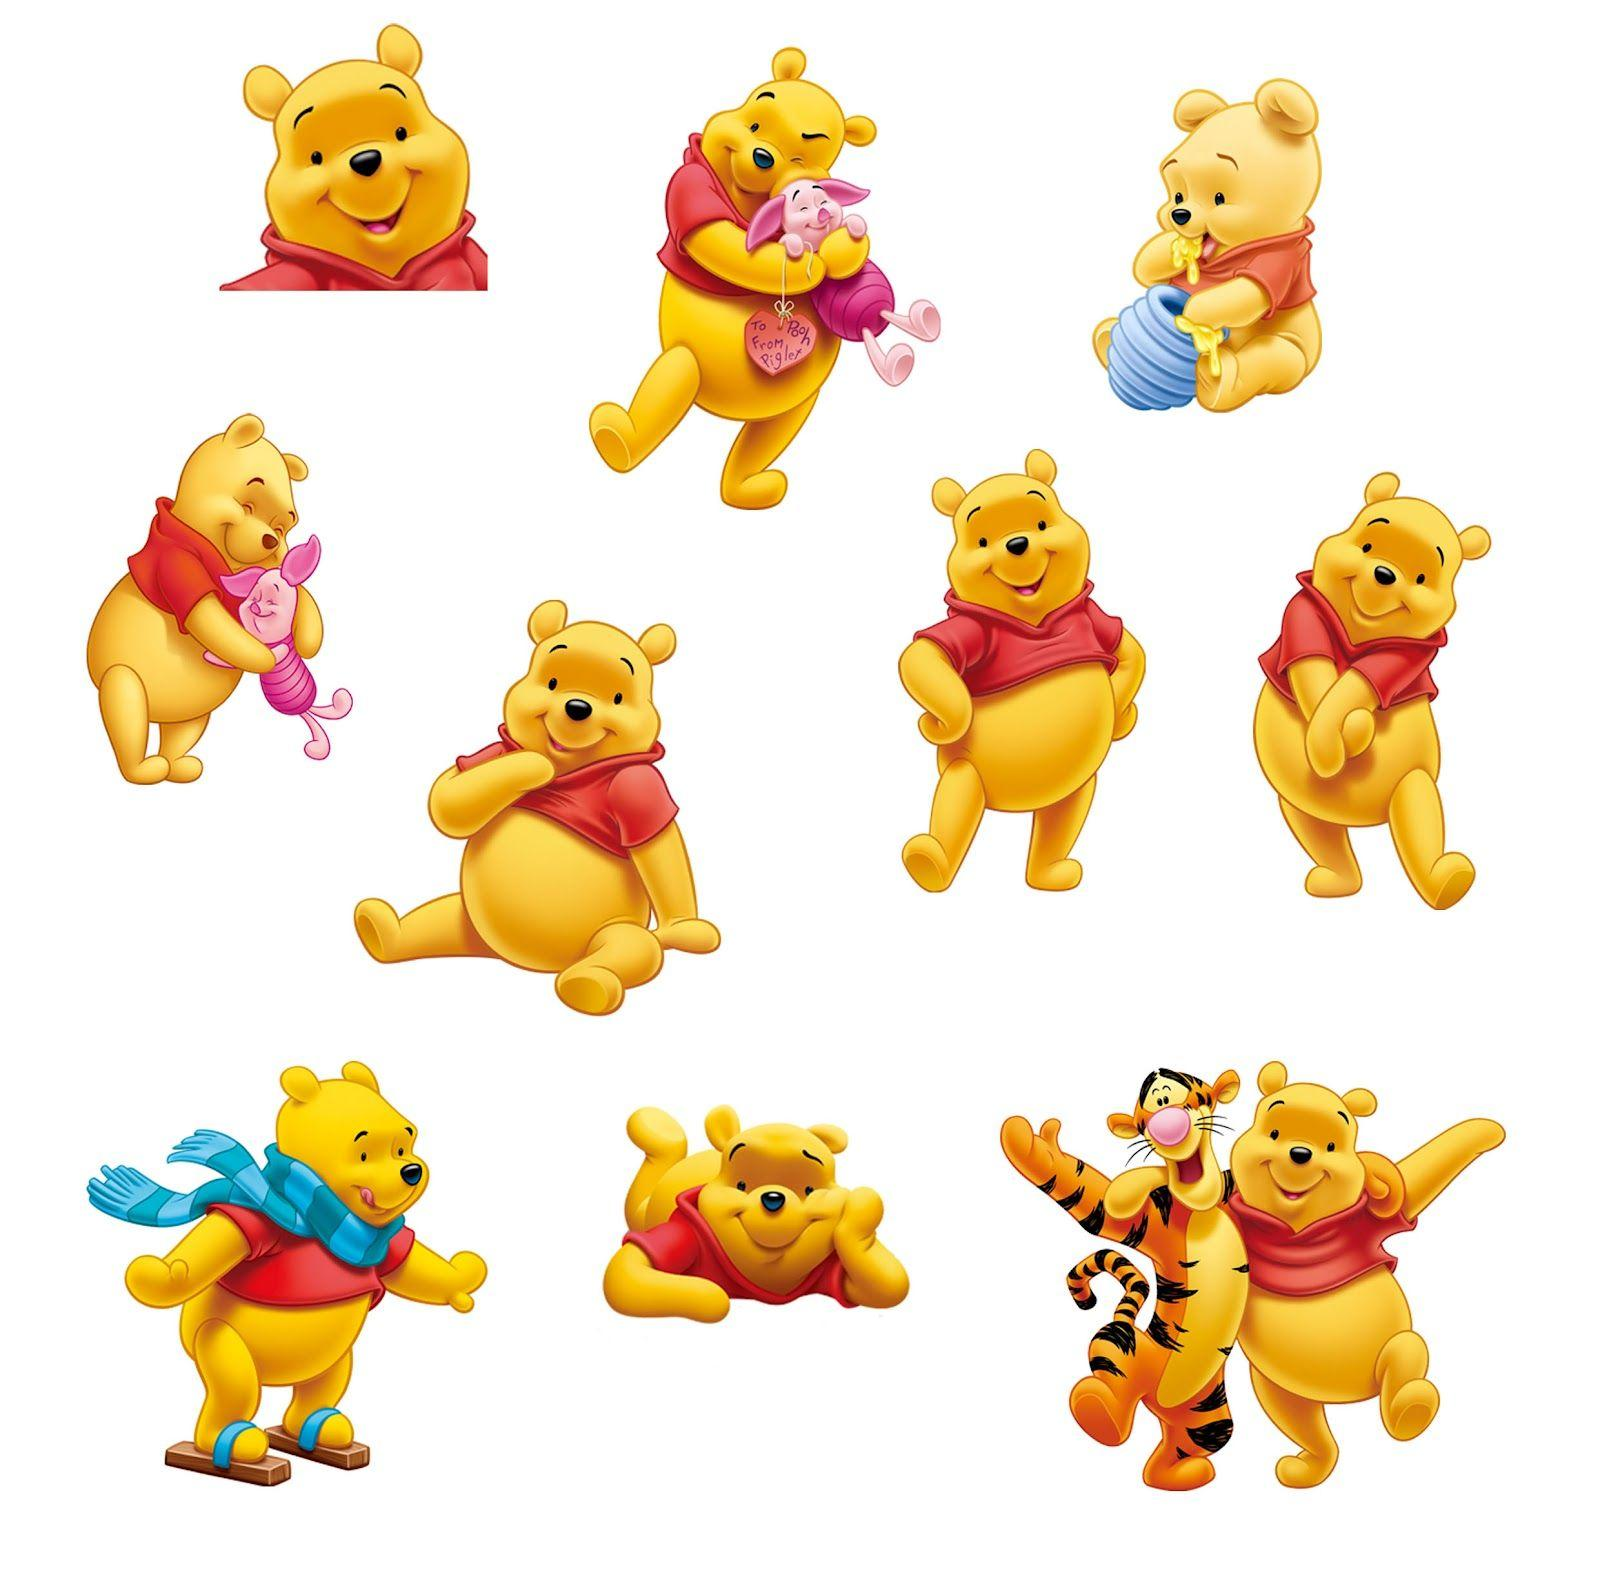 Wallpaper Winnie The Pooh: Wallpapers Winnie The Pooh Baby